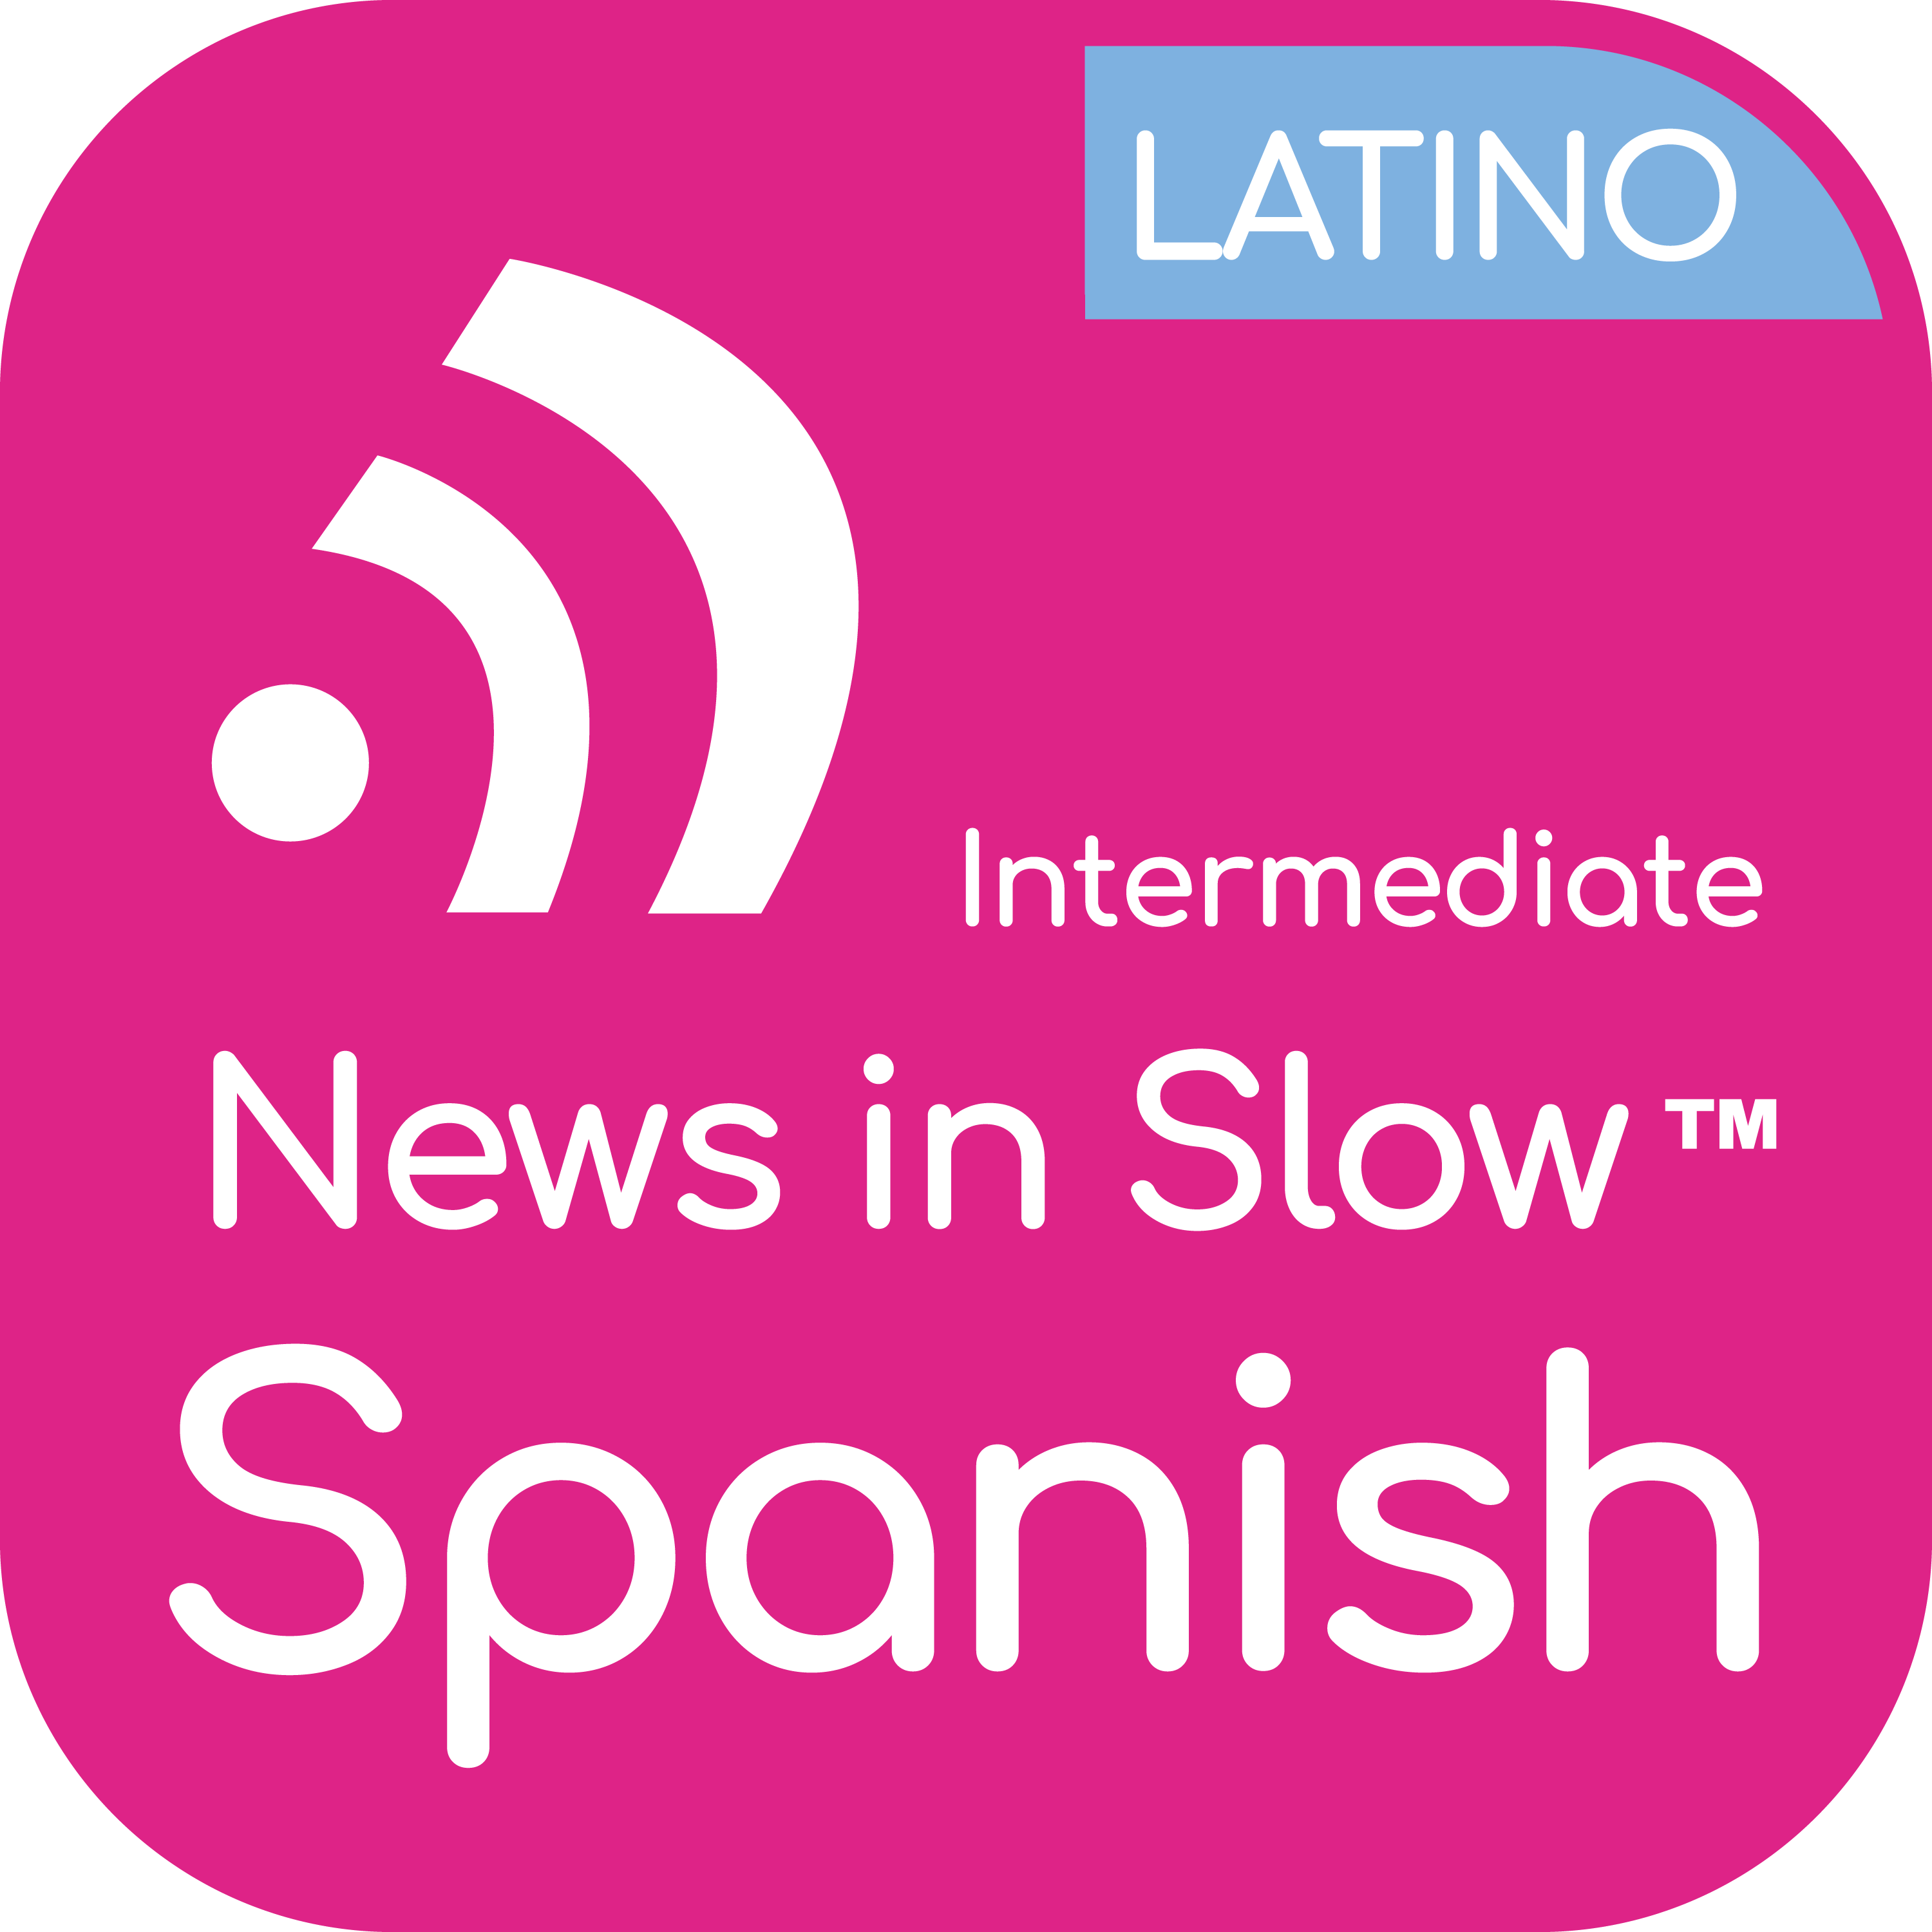 News In Slow Spanish Latino #387 - Easy Spanish Conversation about Current Events